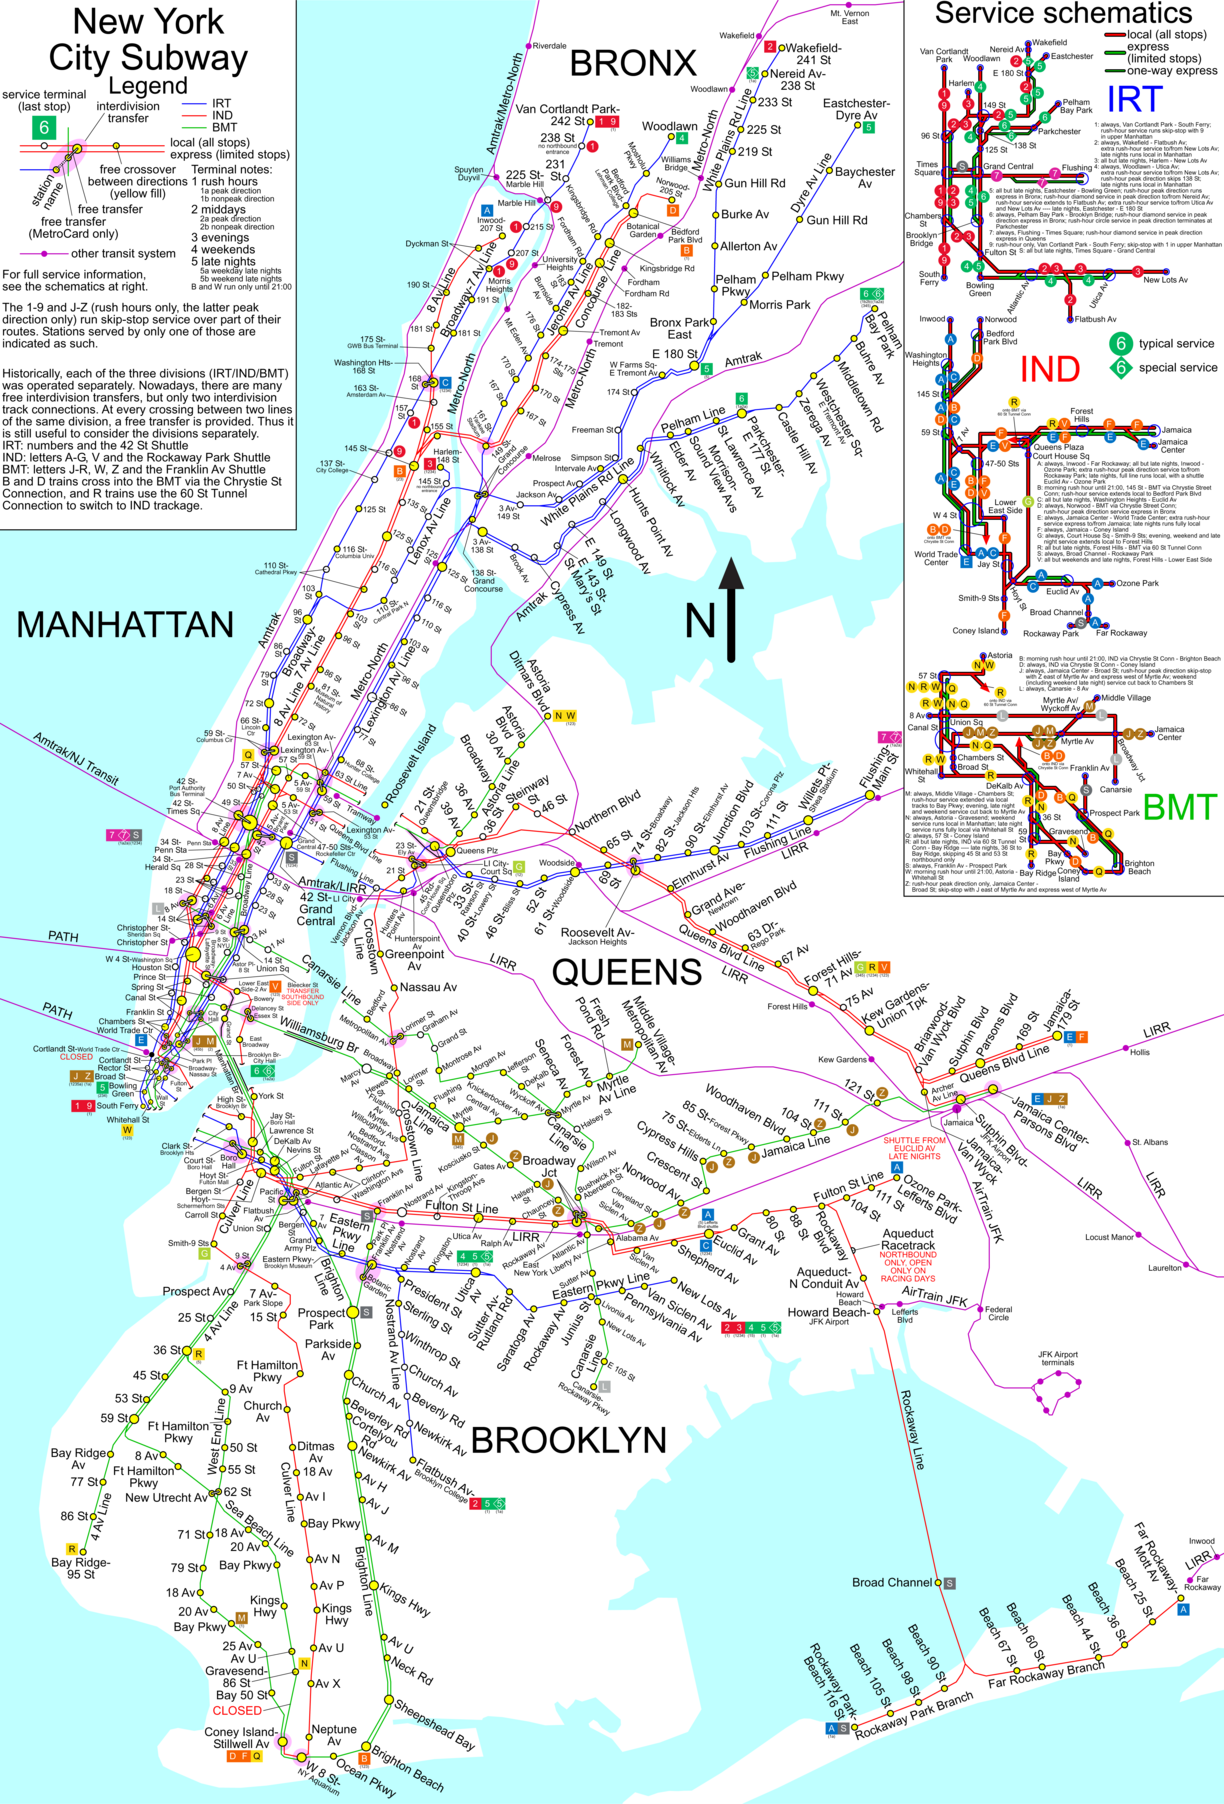 spui_nyc_subway_map_1224pxpng